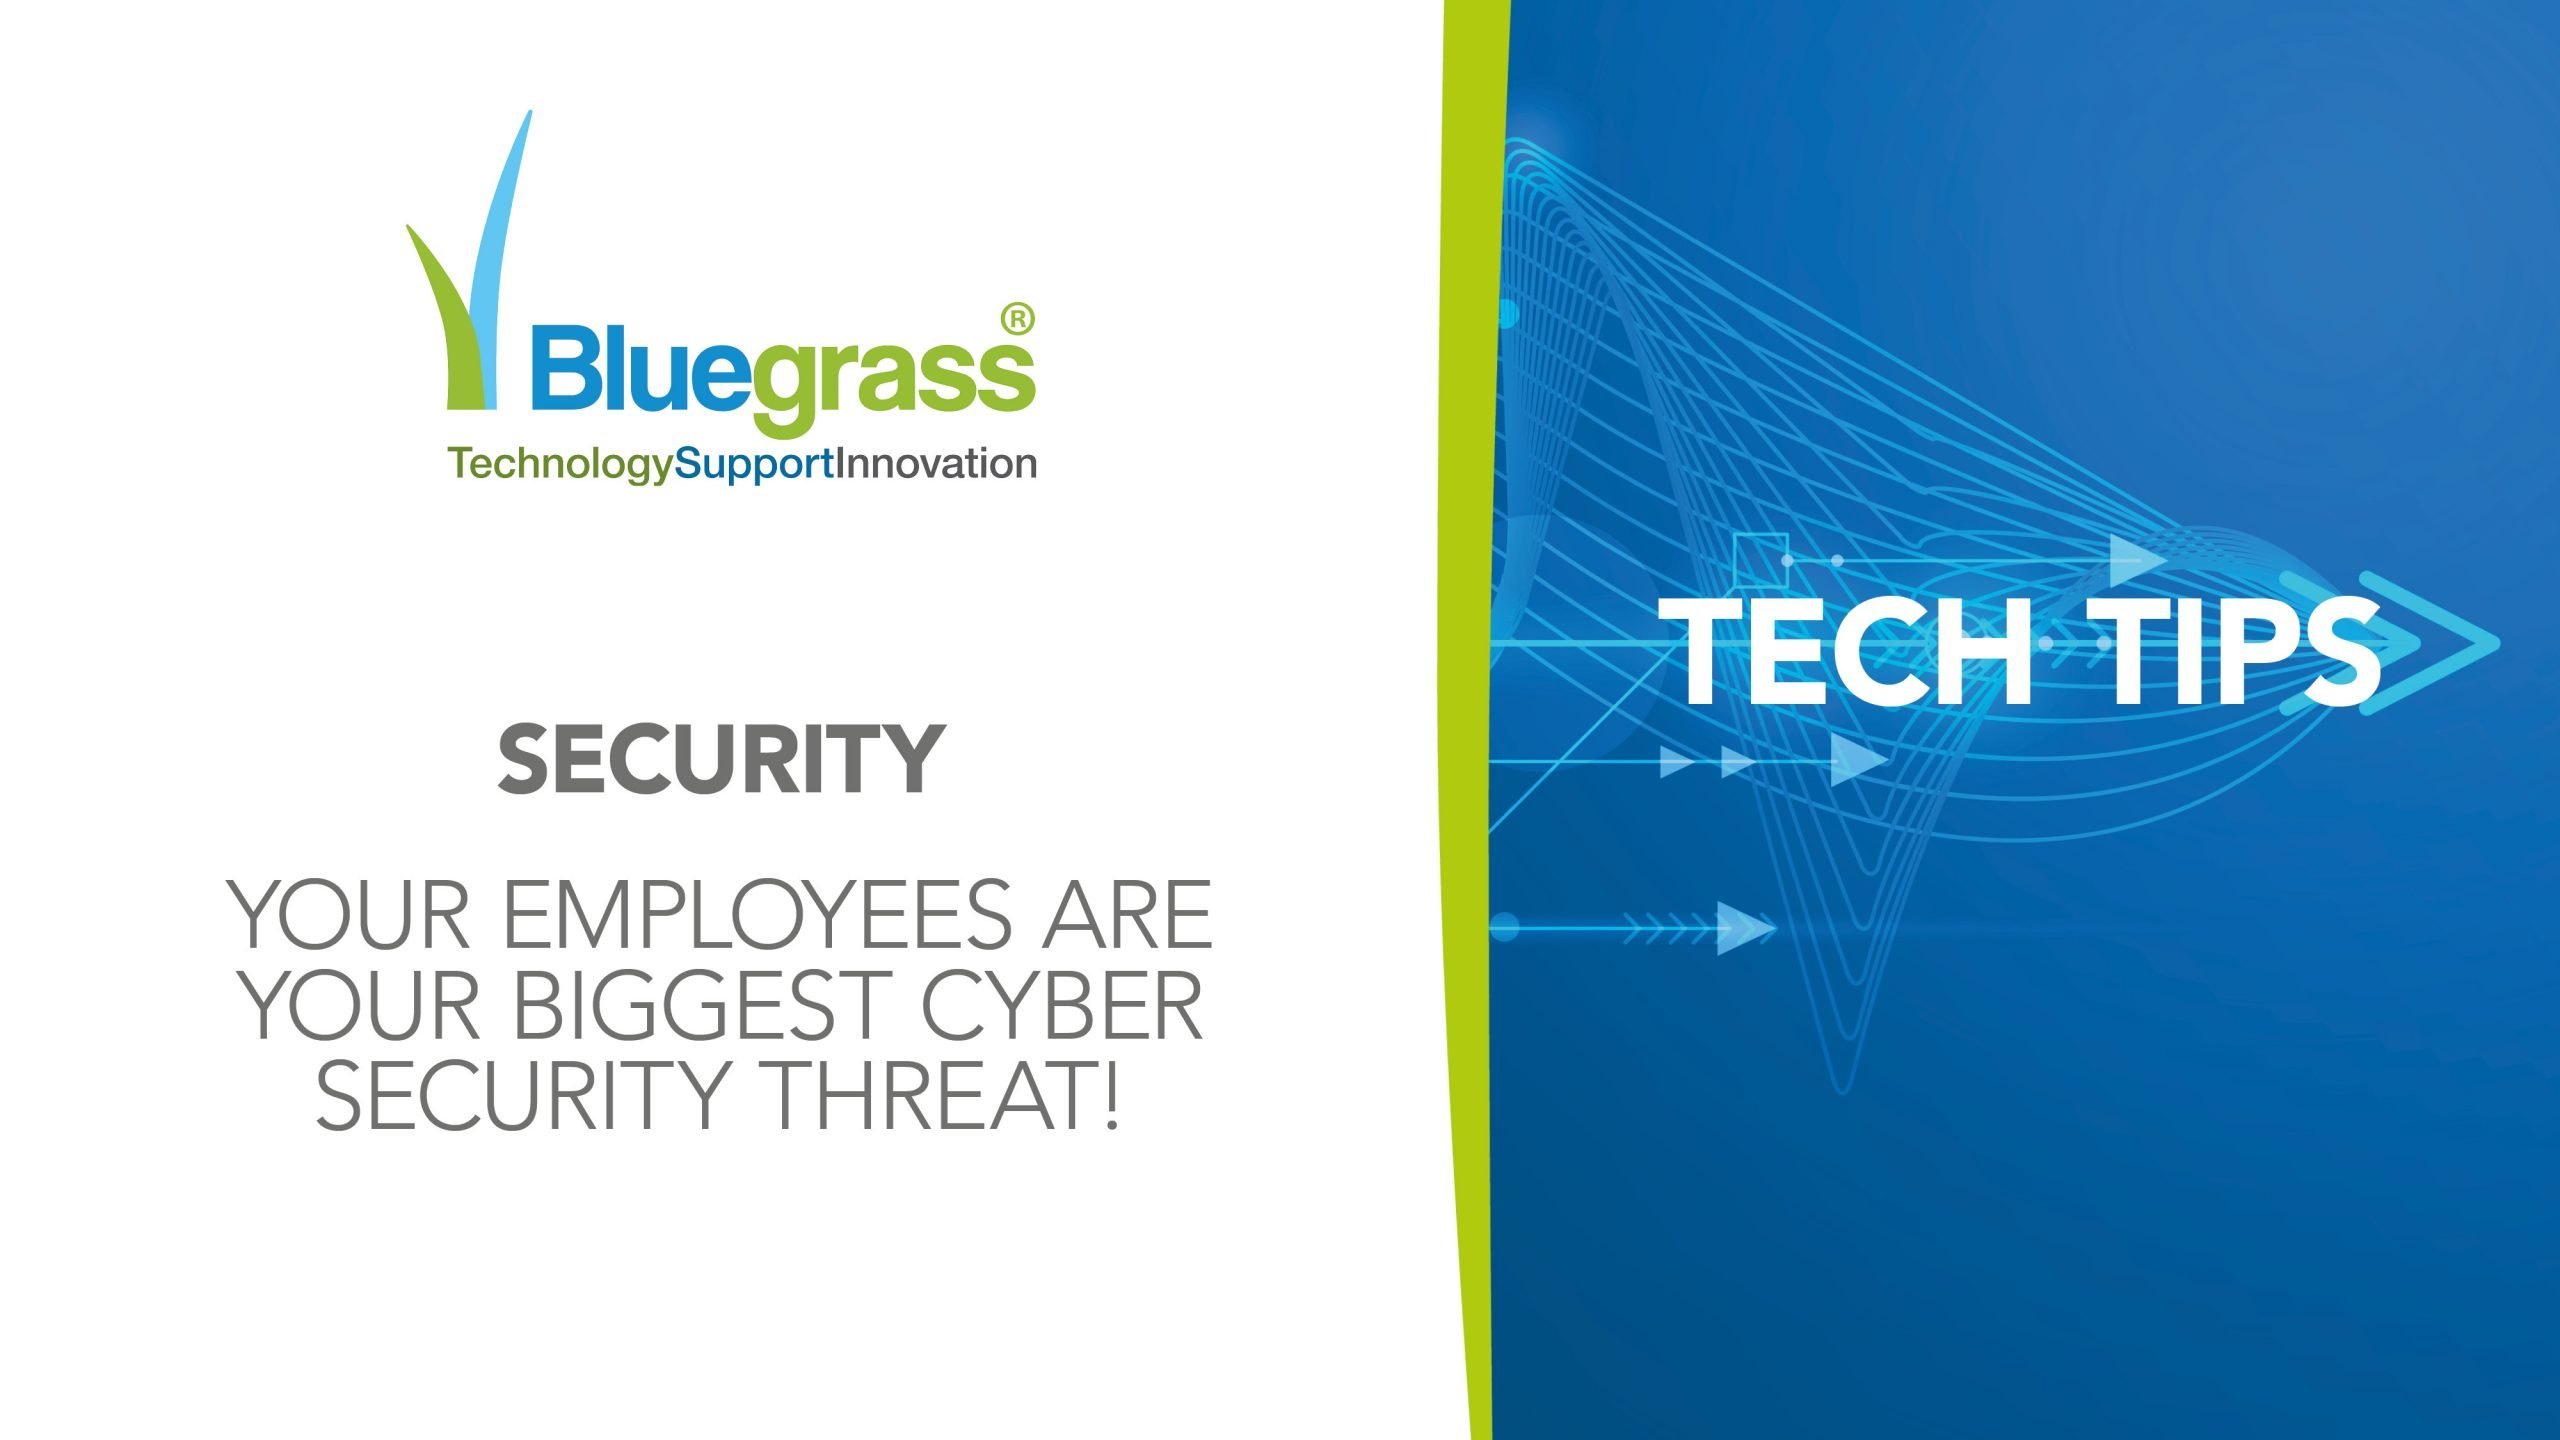 Tech tips security and employees